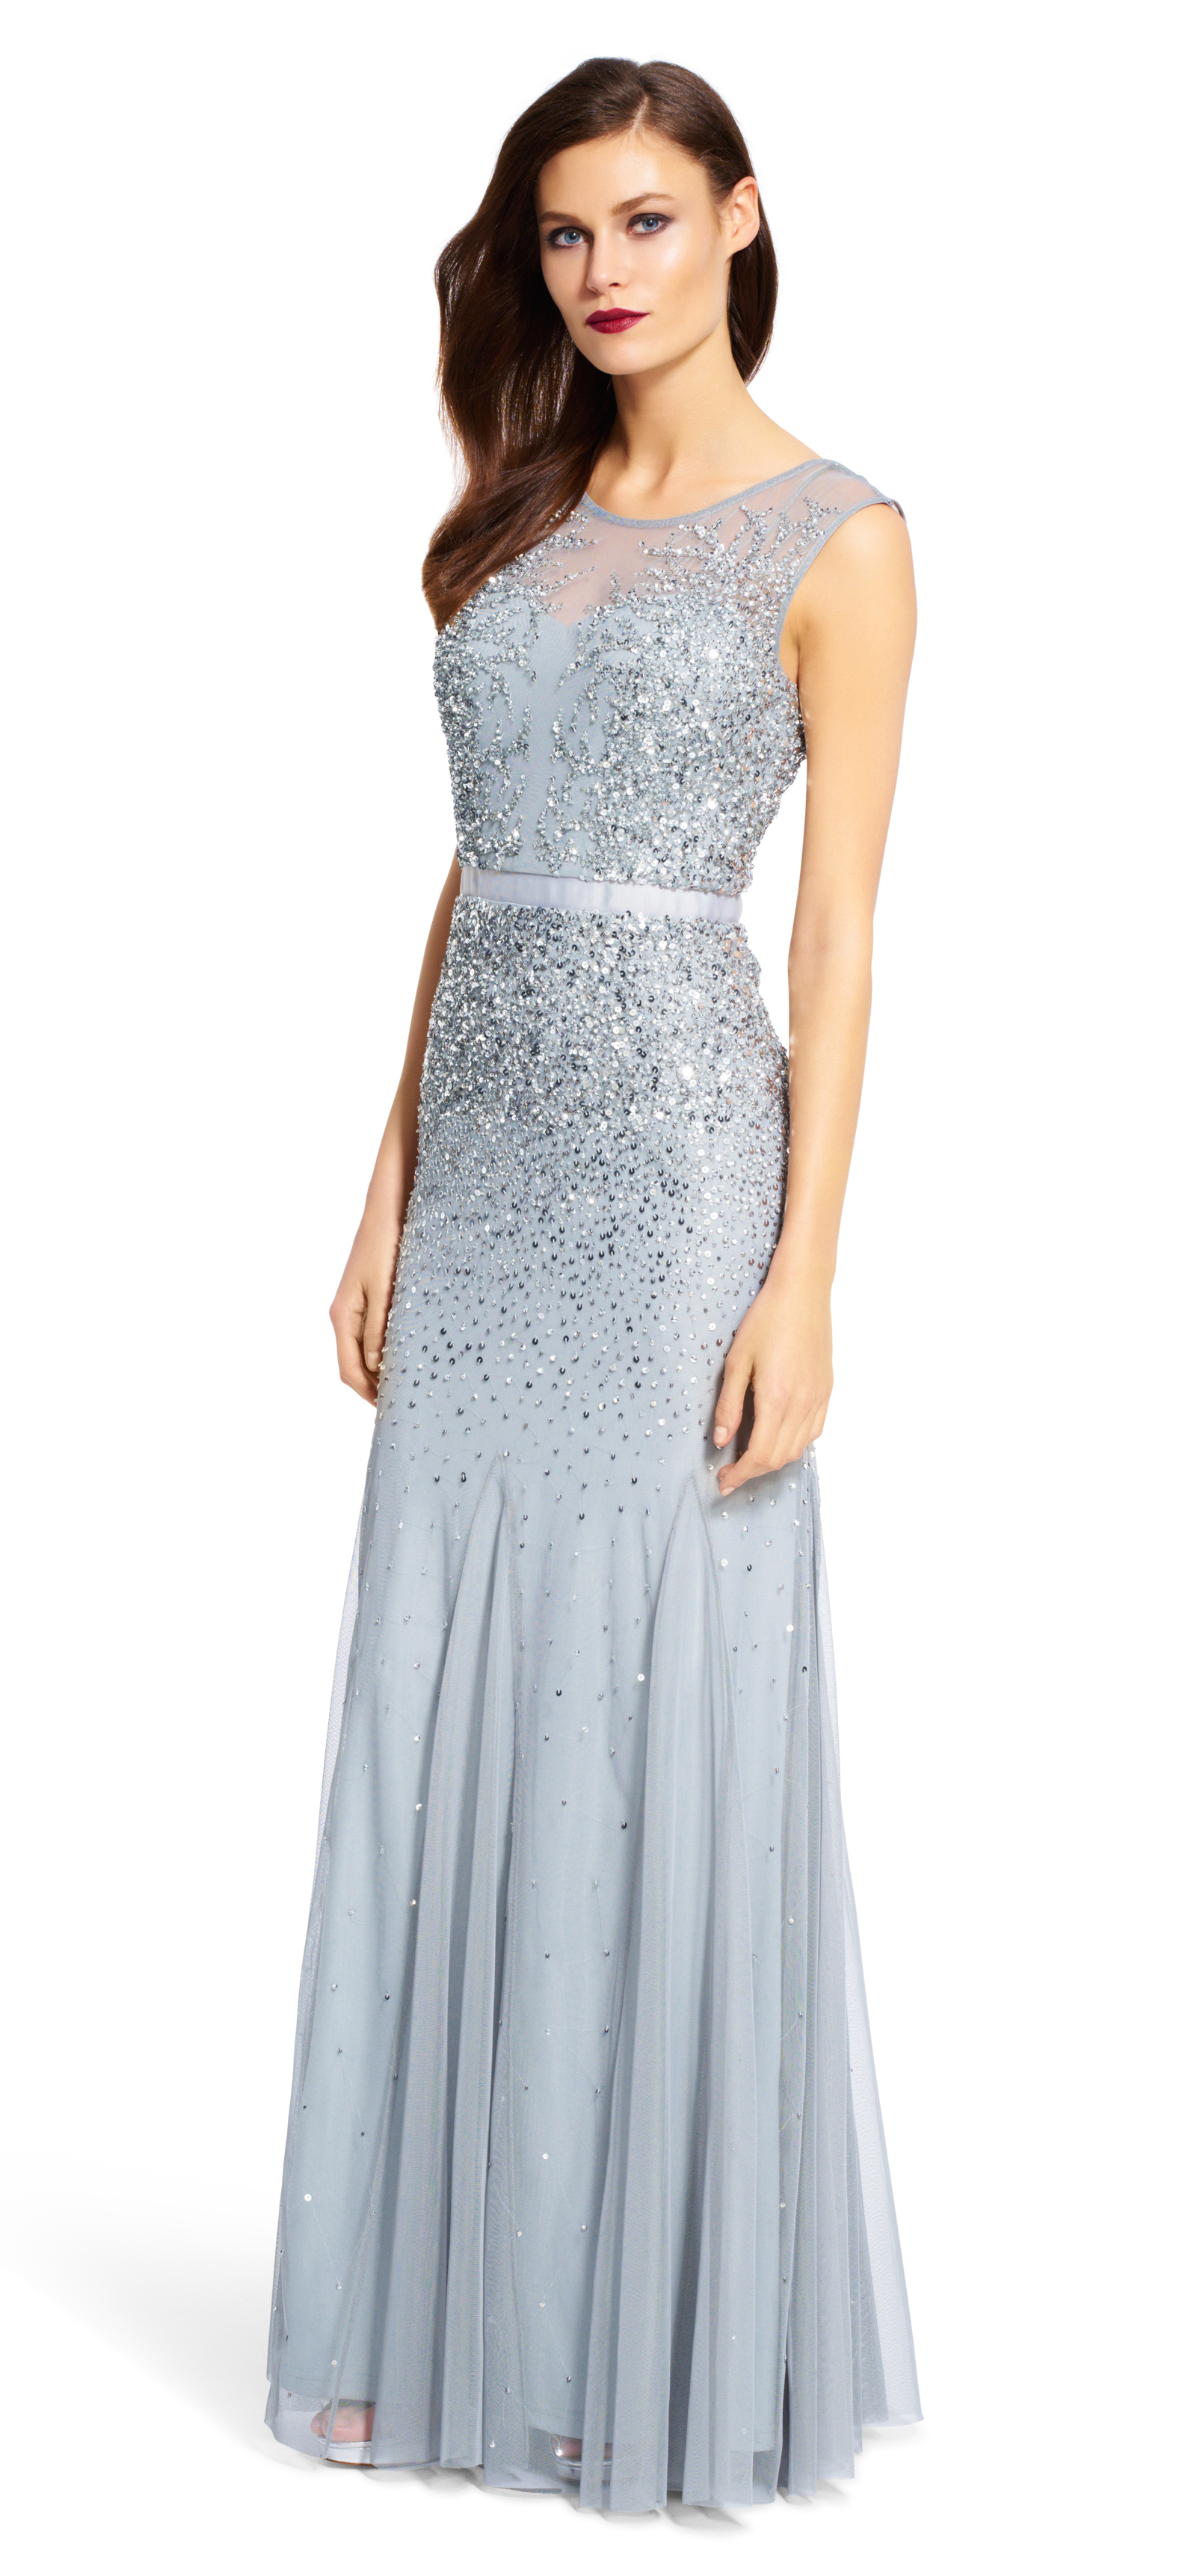 Lyst  Adrianna Papell Long Beaded Gown With Illusion Neck in Purple